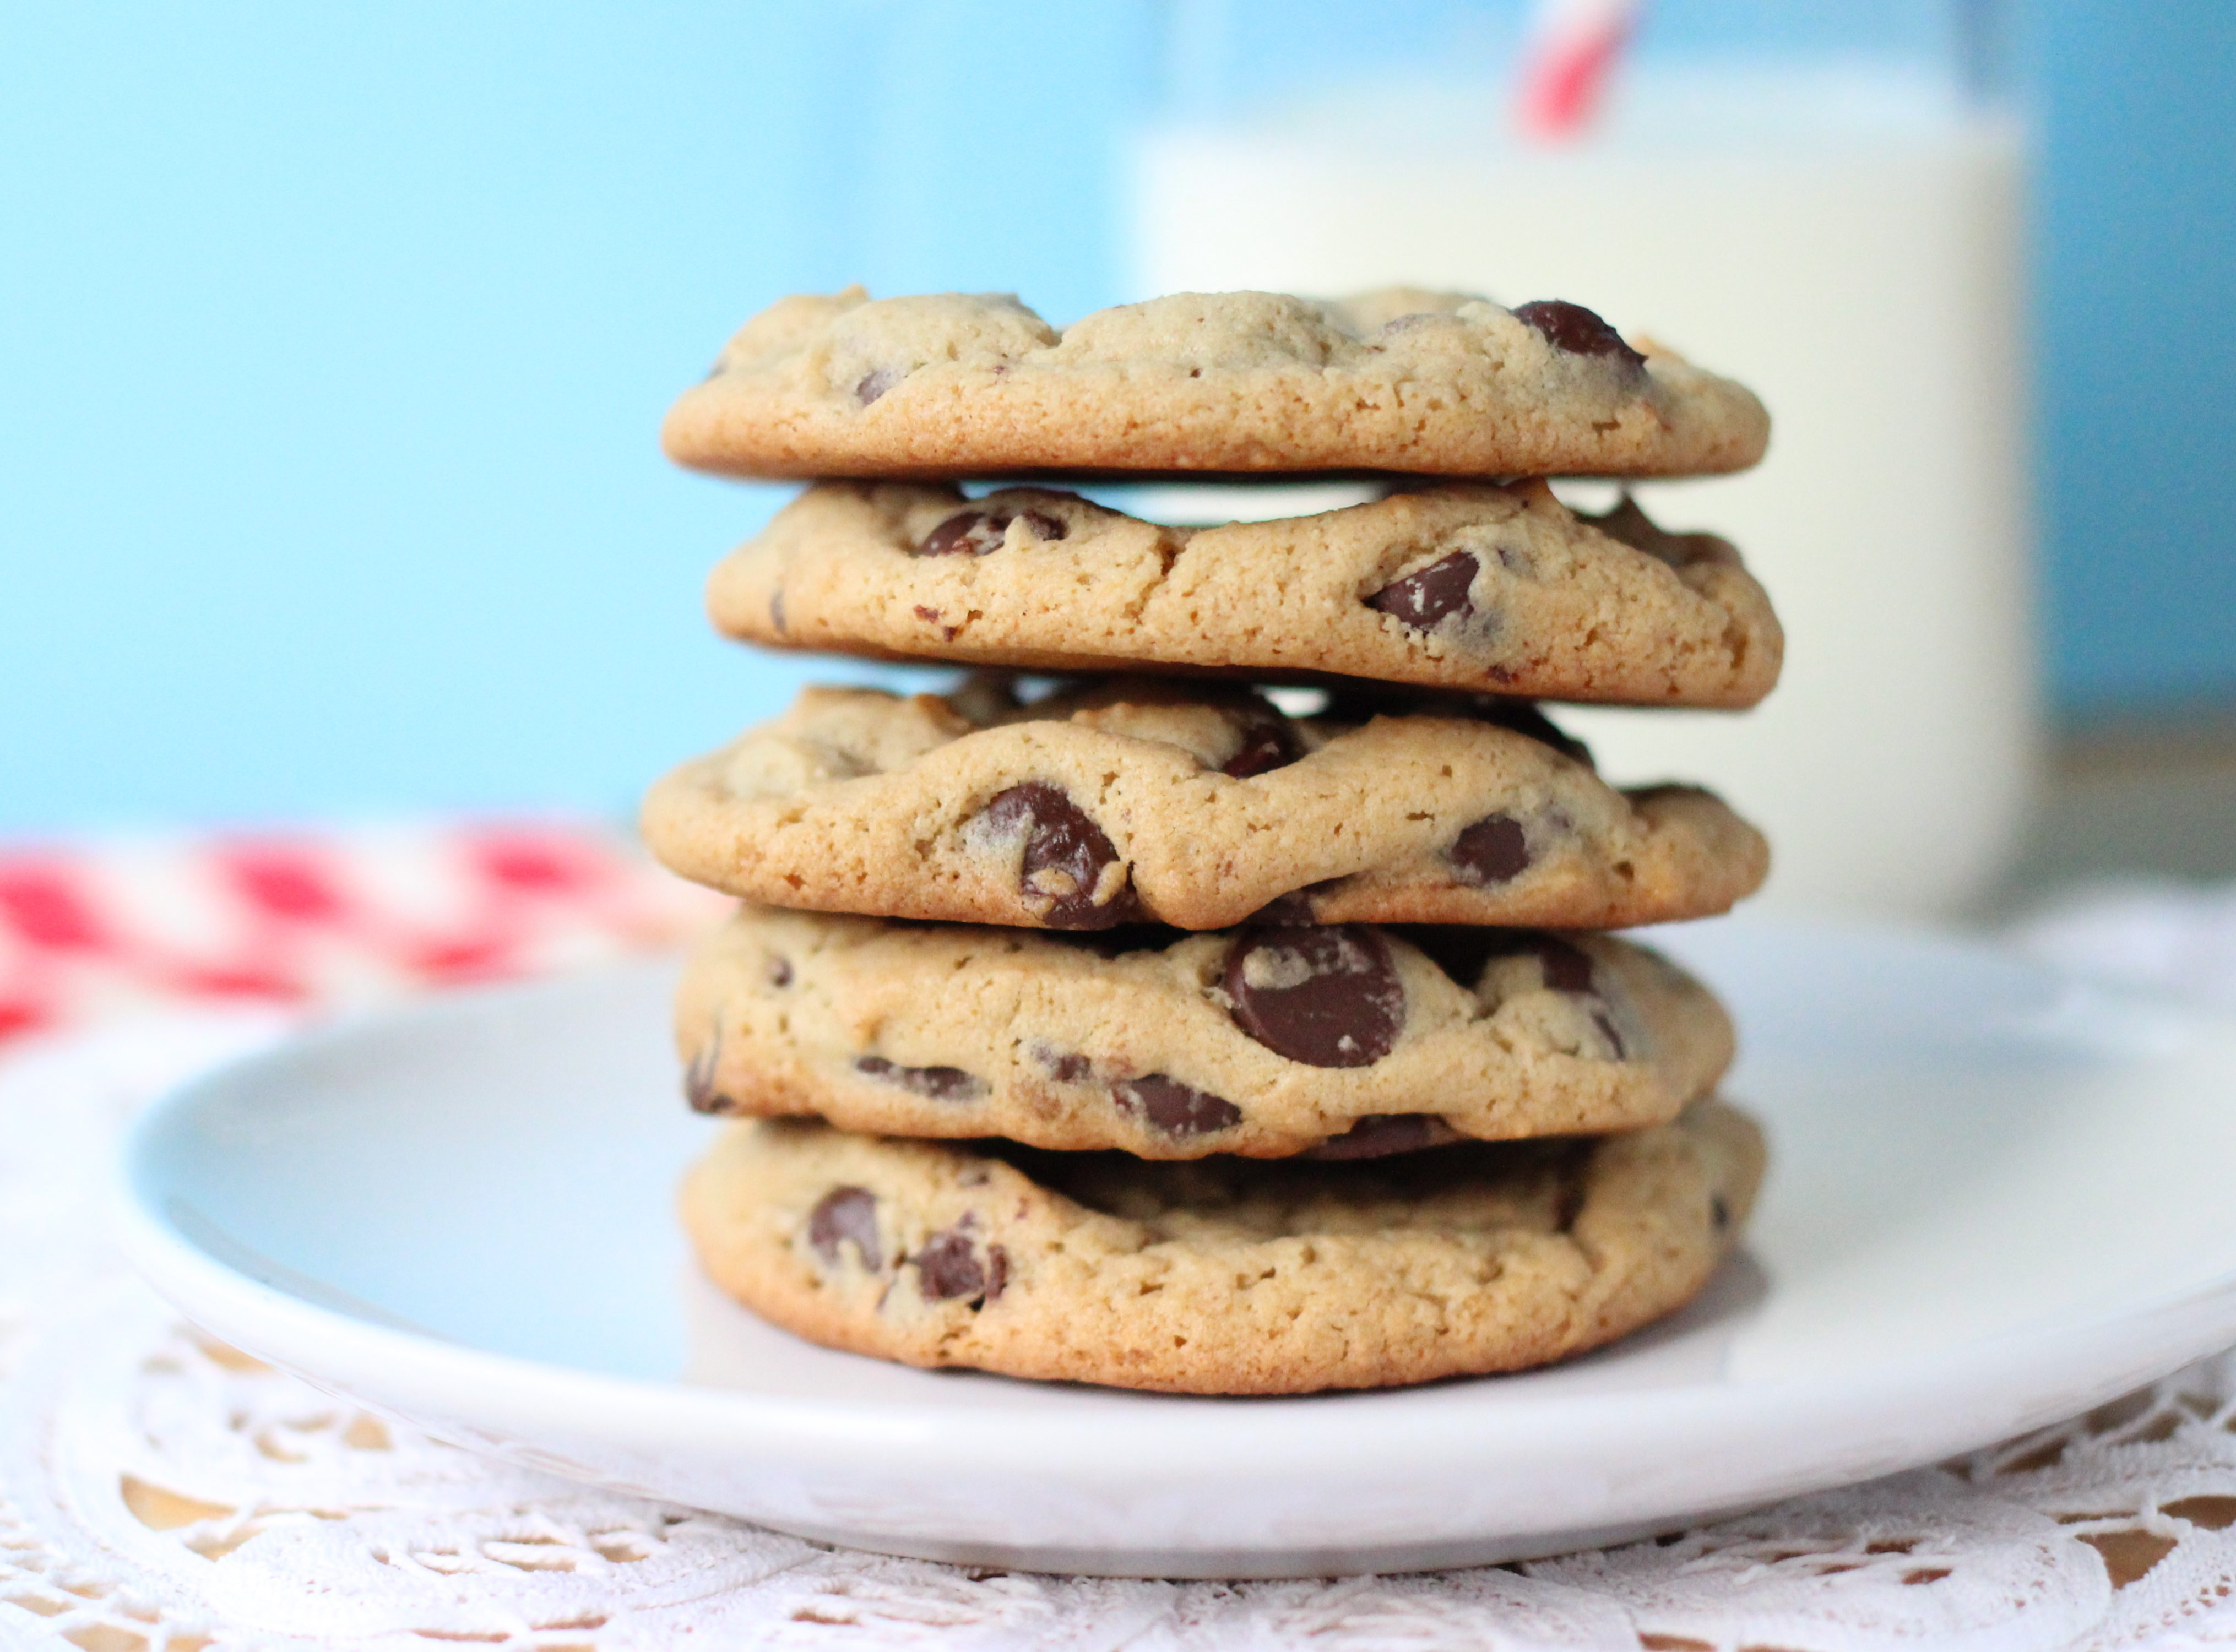 3. Chocolate Chip Cookies